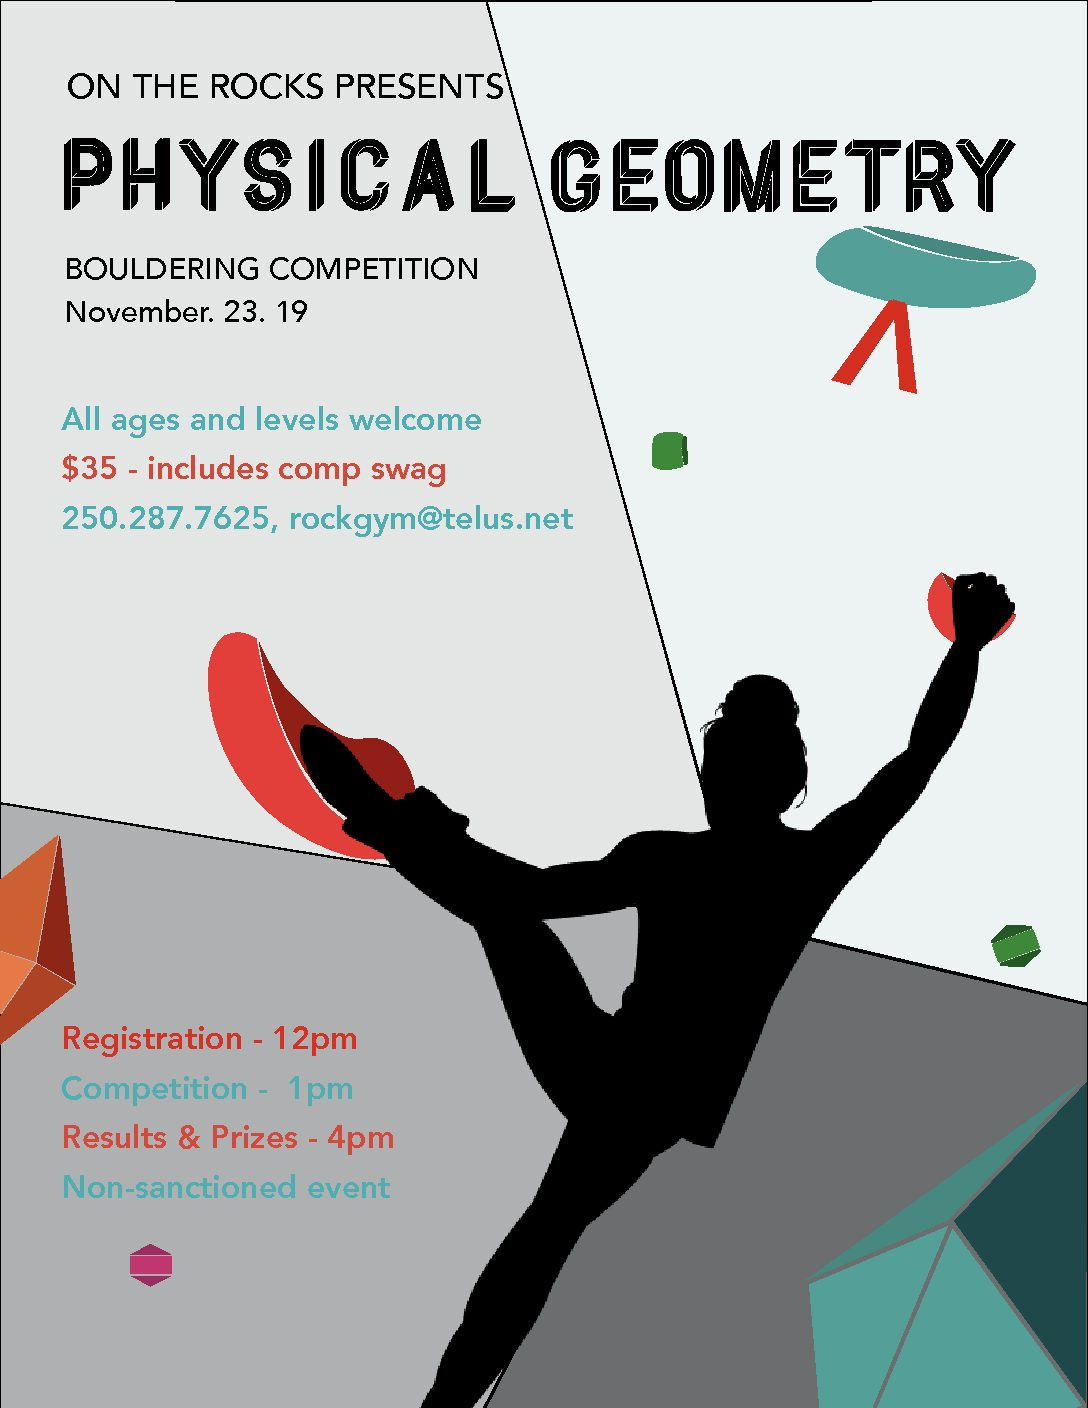 Physical Geometry Bouldering Comp